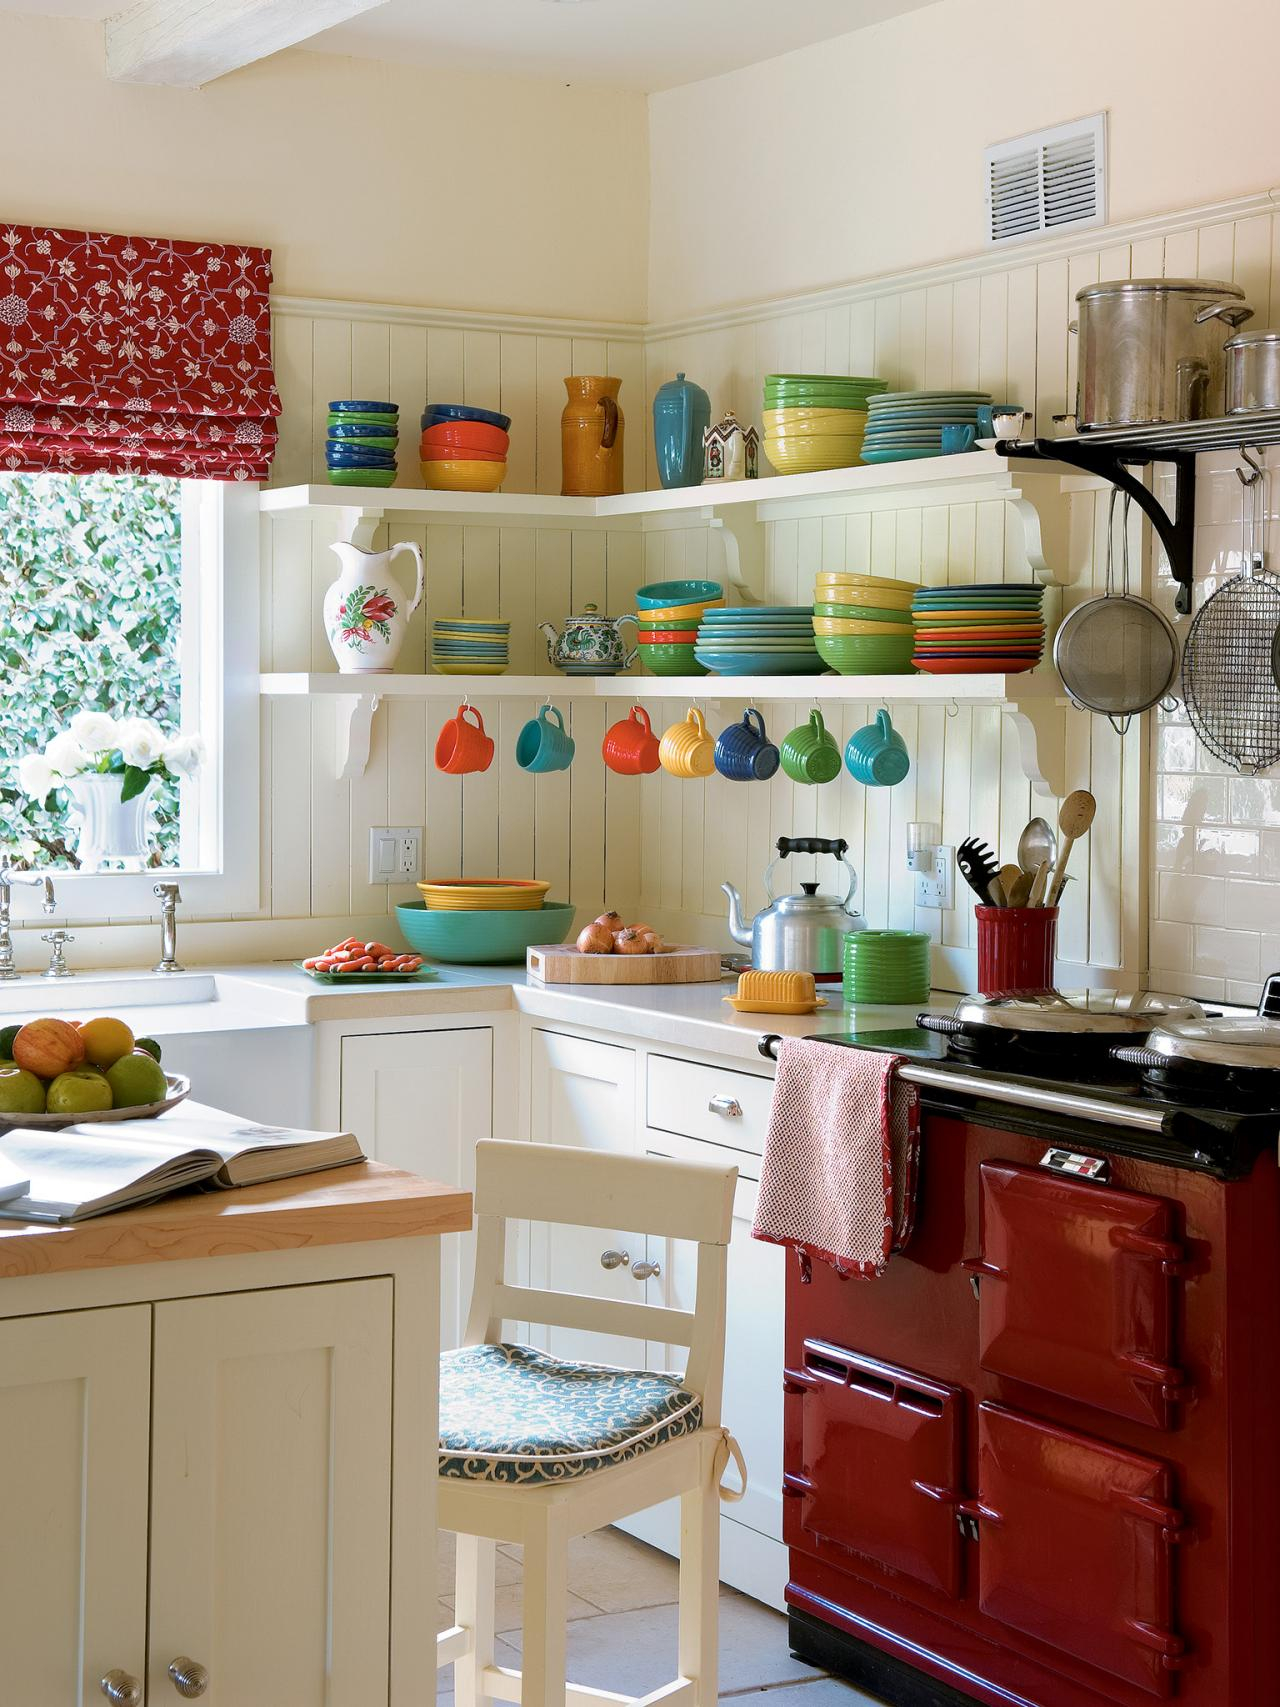 Countertops For Small Kitchens Pictures Ideas From Hgtv Kathryn Layjao